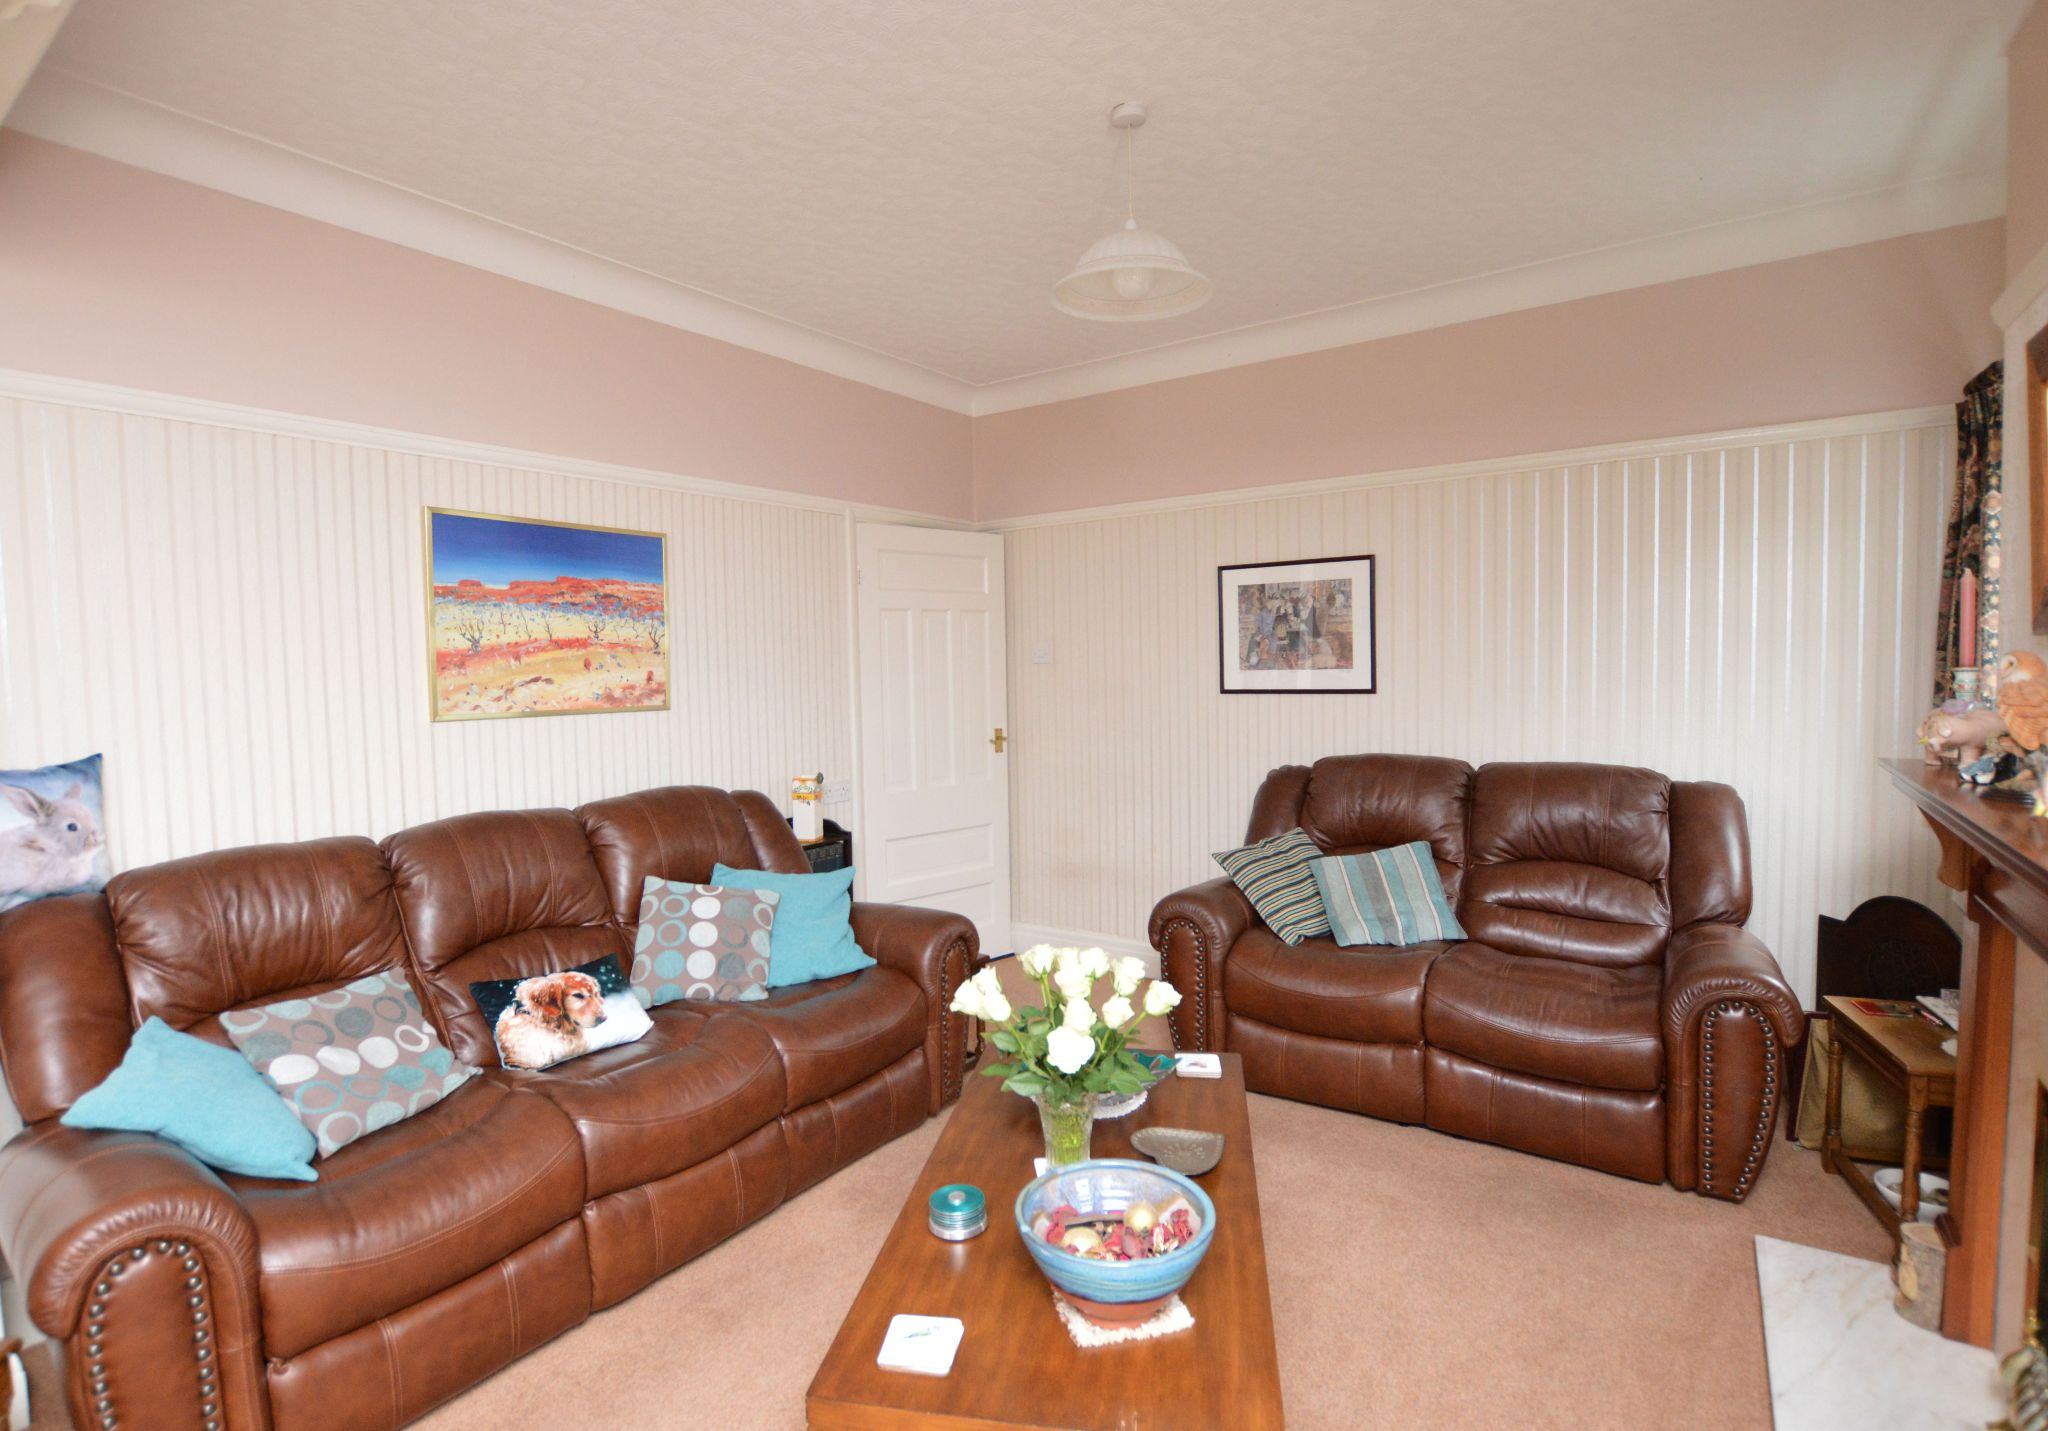 4 bedroom detached bungalow For Sale in Abergele - Lounge View 2